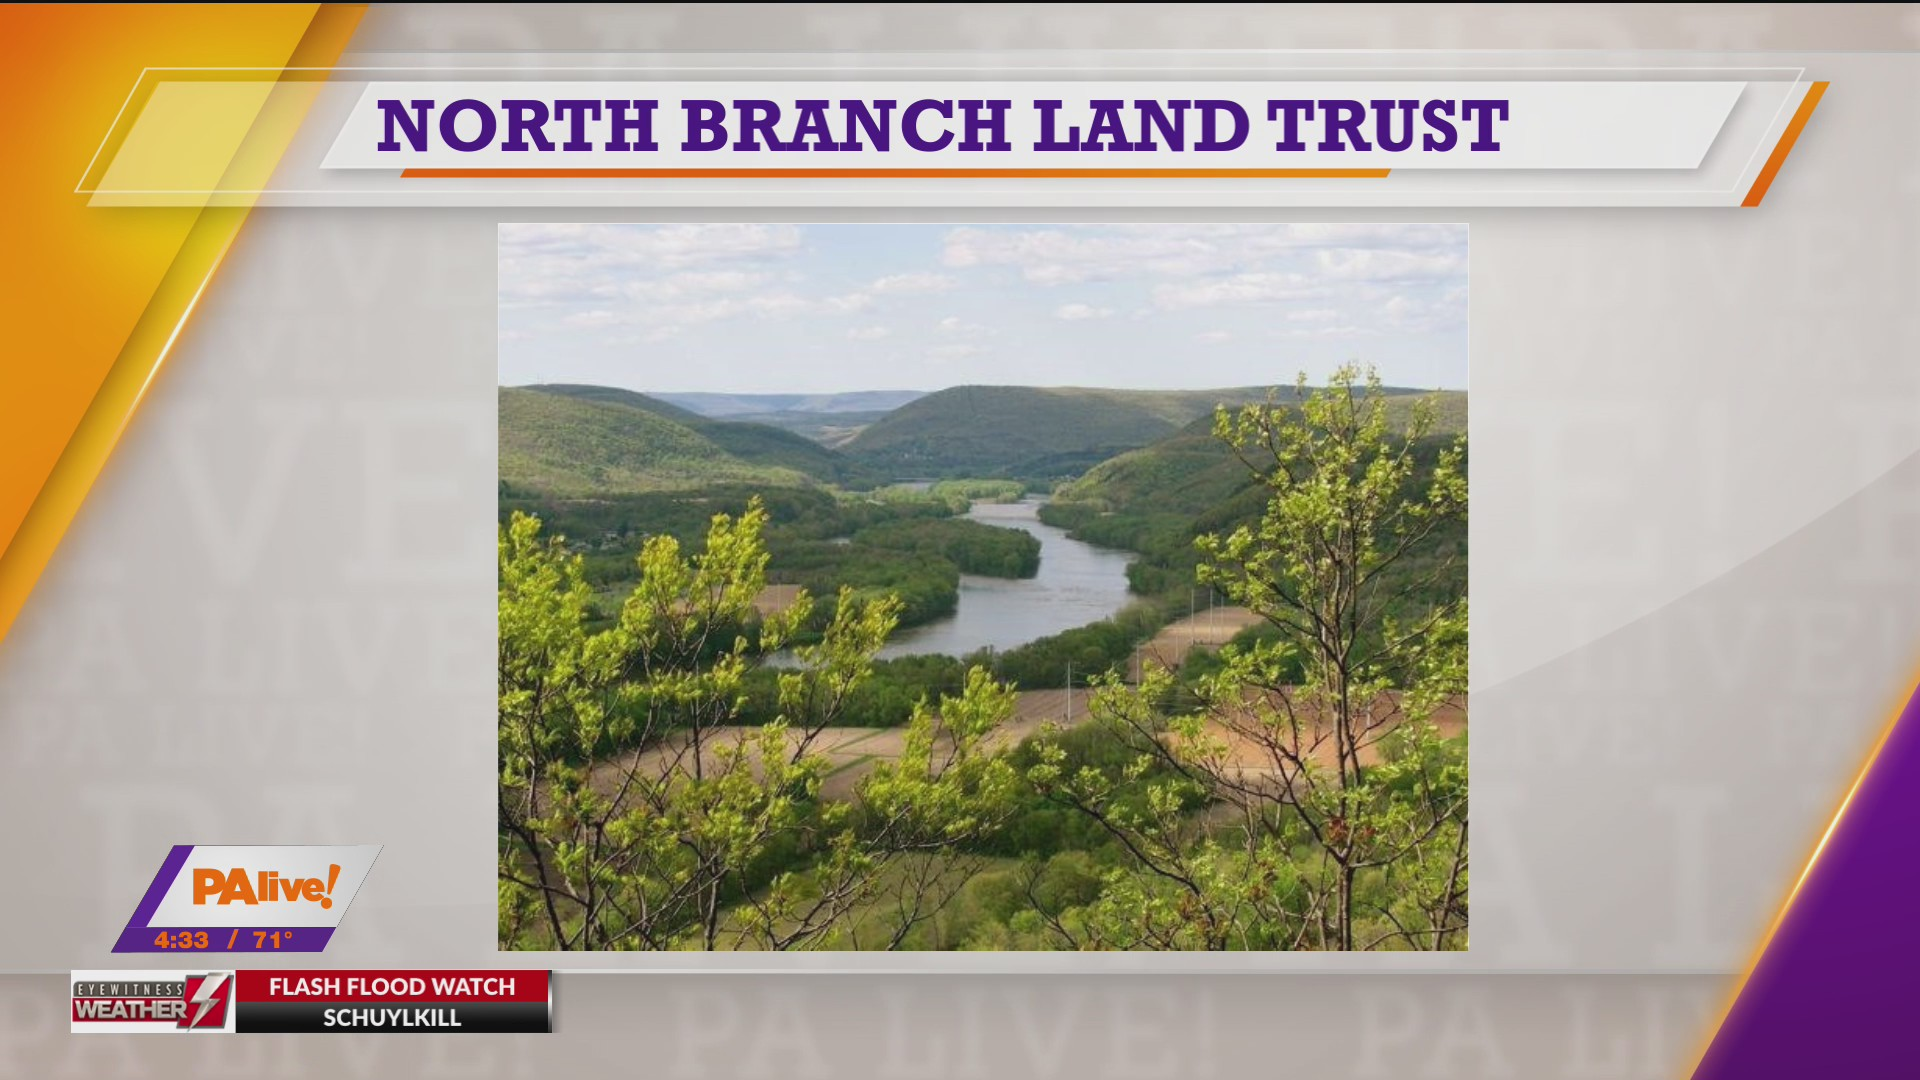 PAlive! North Branch Land Trust August 7, 2020